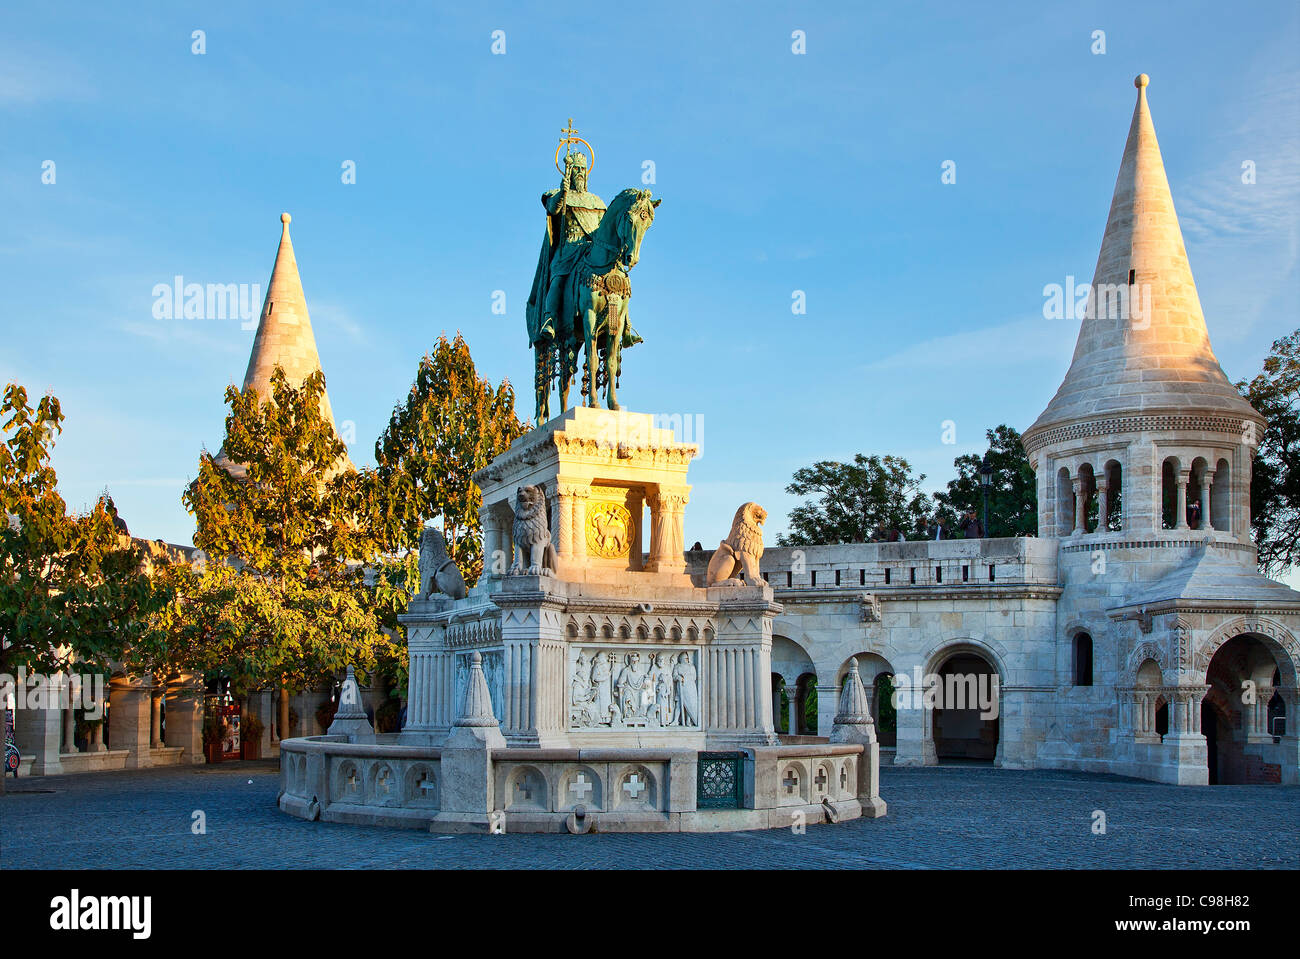 Budapest, Fishermen's Bastion and a statue of Saint Stephen - Stock Image